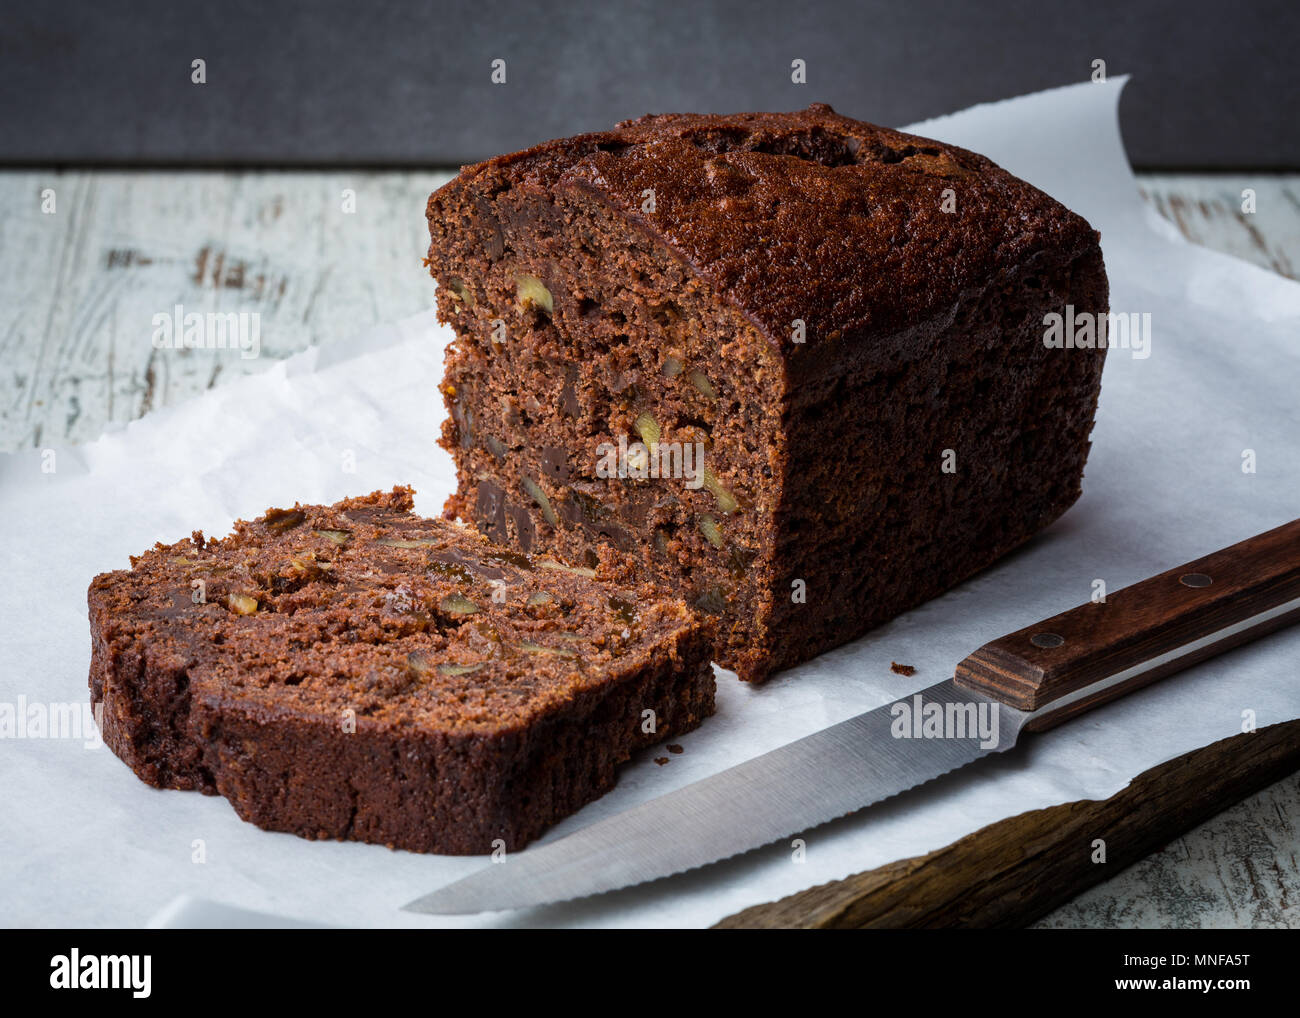 Homemade Chocolate Banana bread - Stock Image